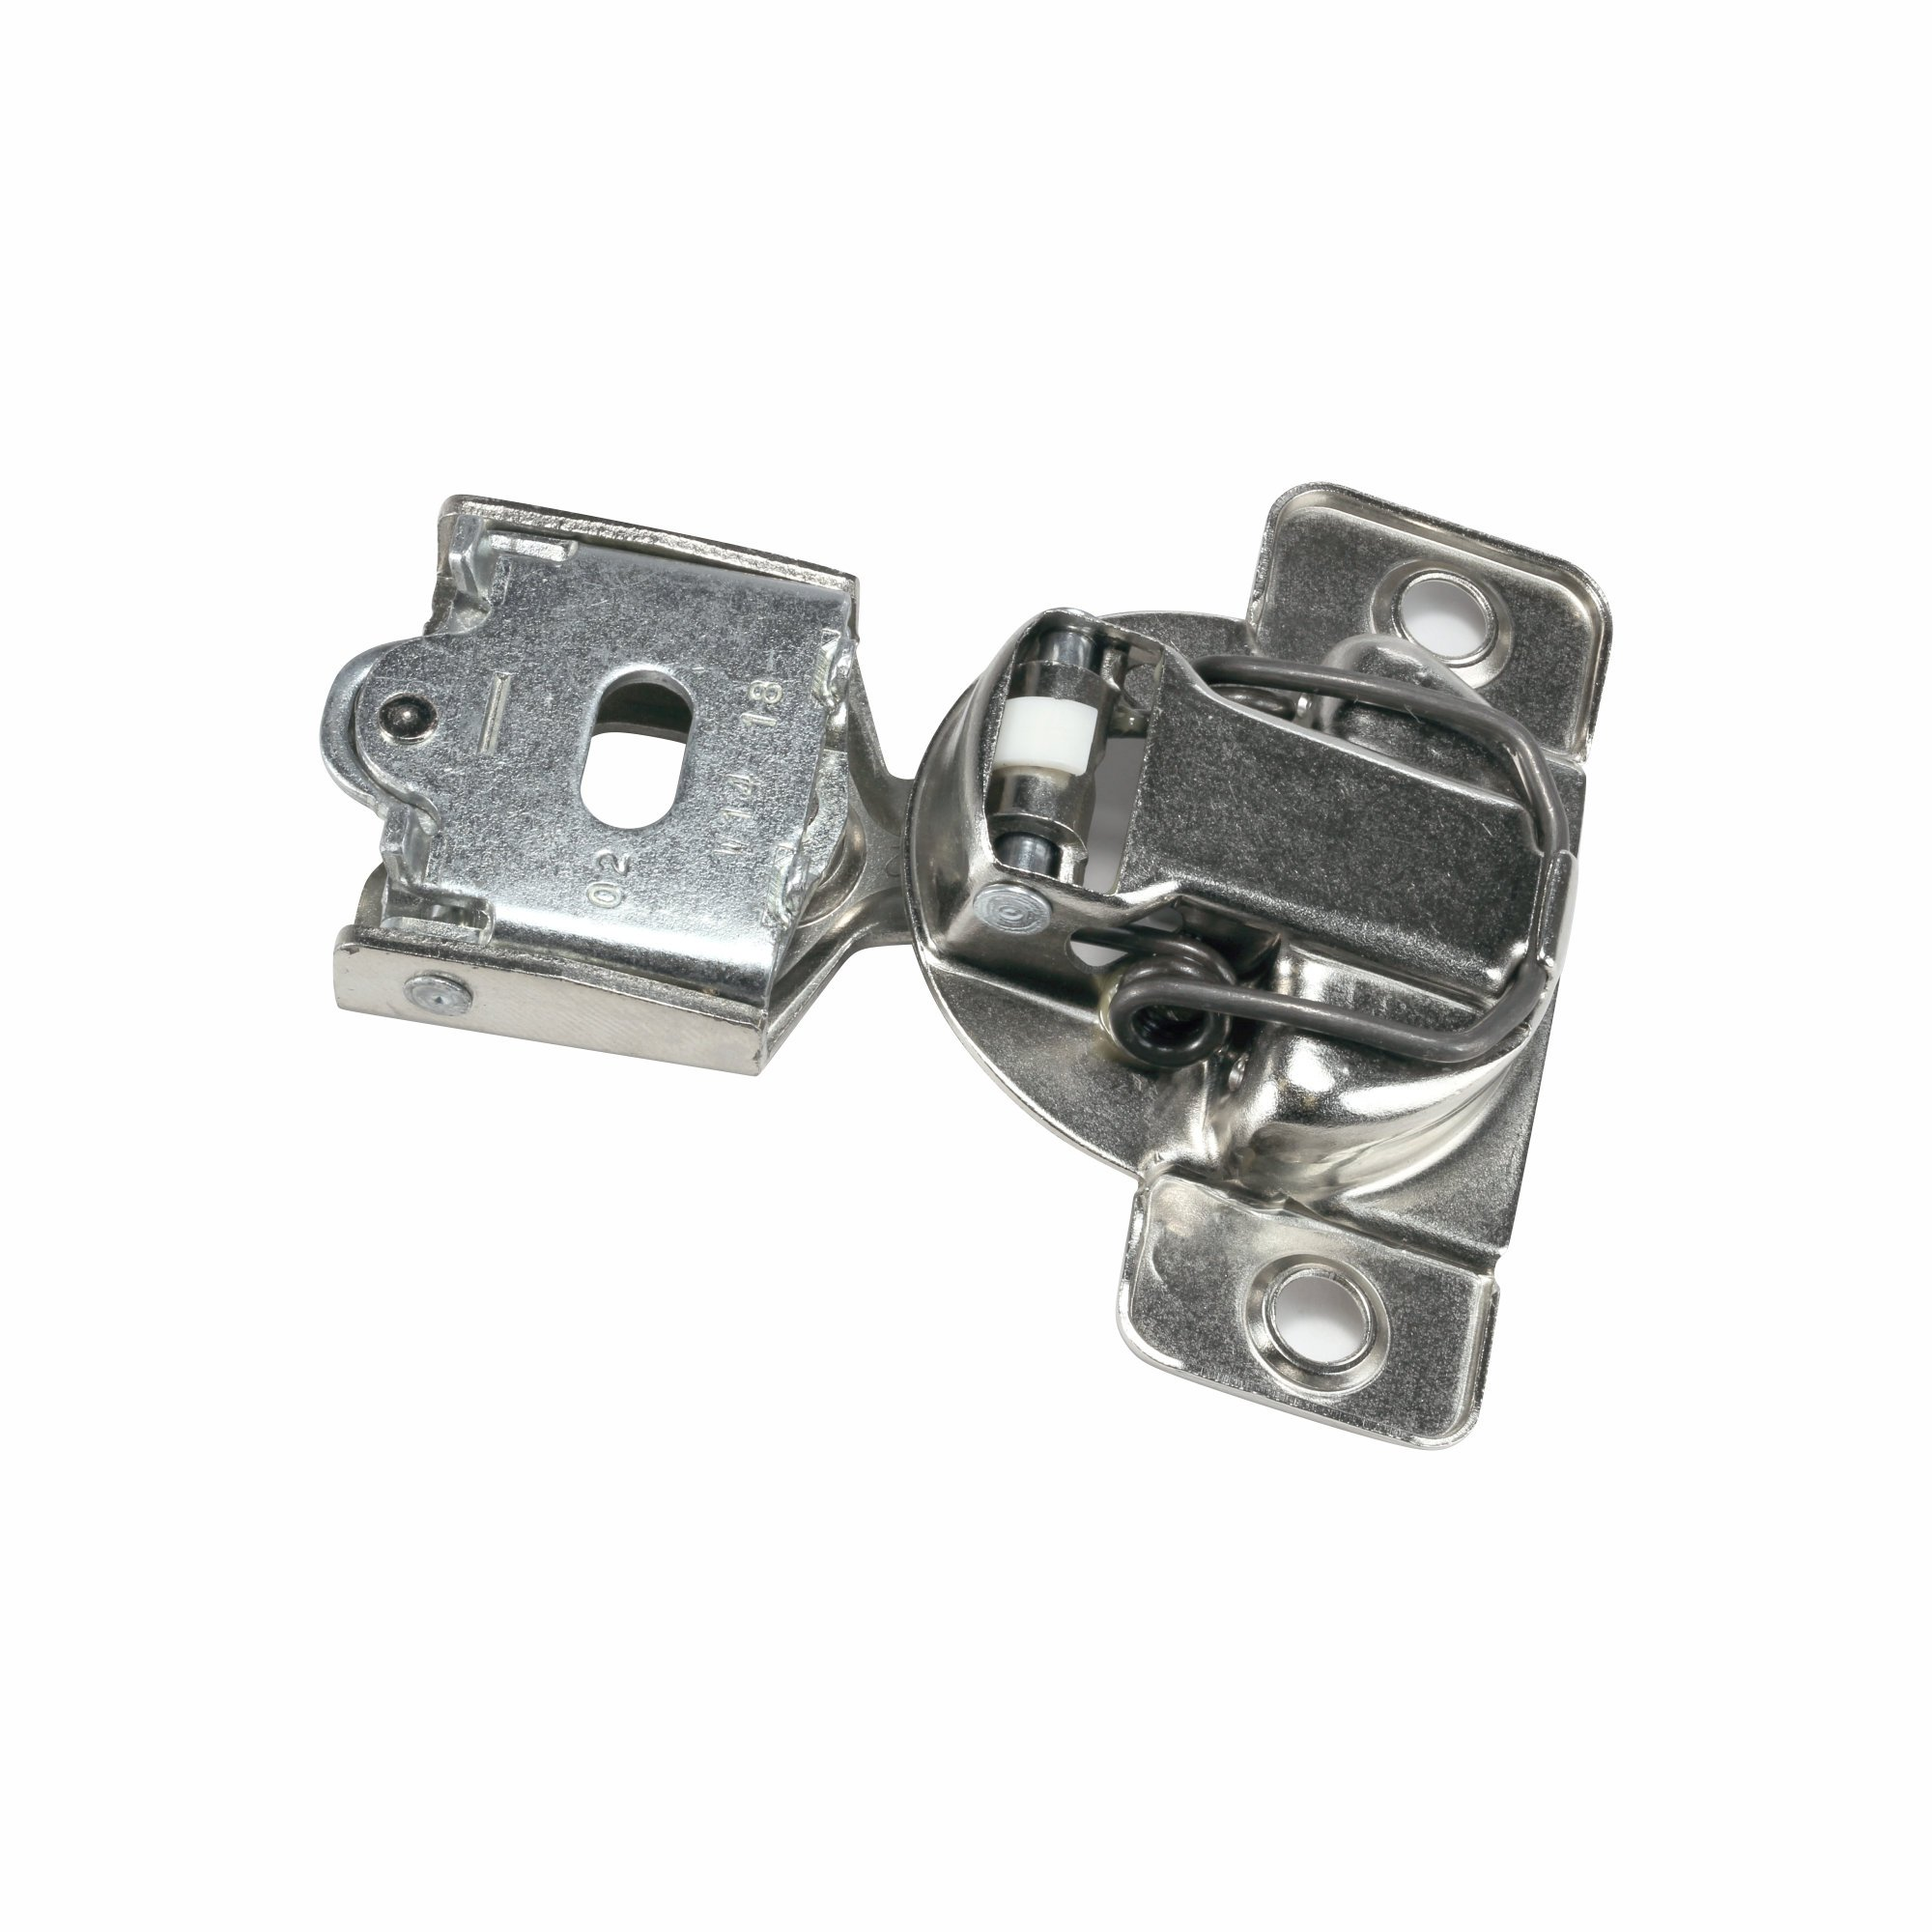 Grass TEC 864 85 Degree Hinge Angle Reduction Clip 80125-42 (25 Pack) by Rok (Image #6)